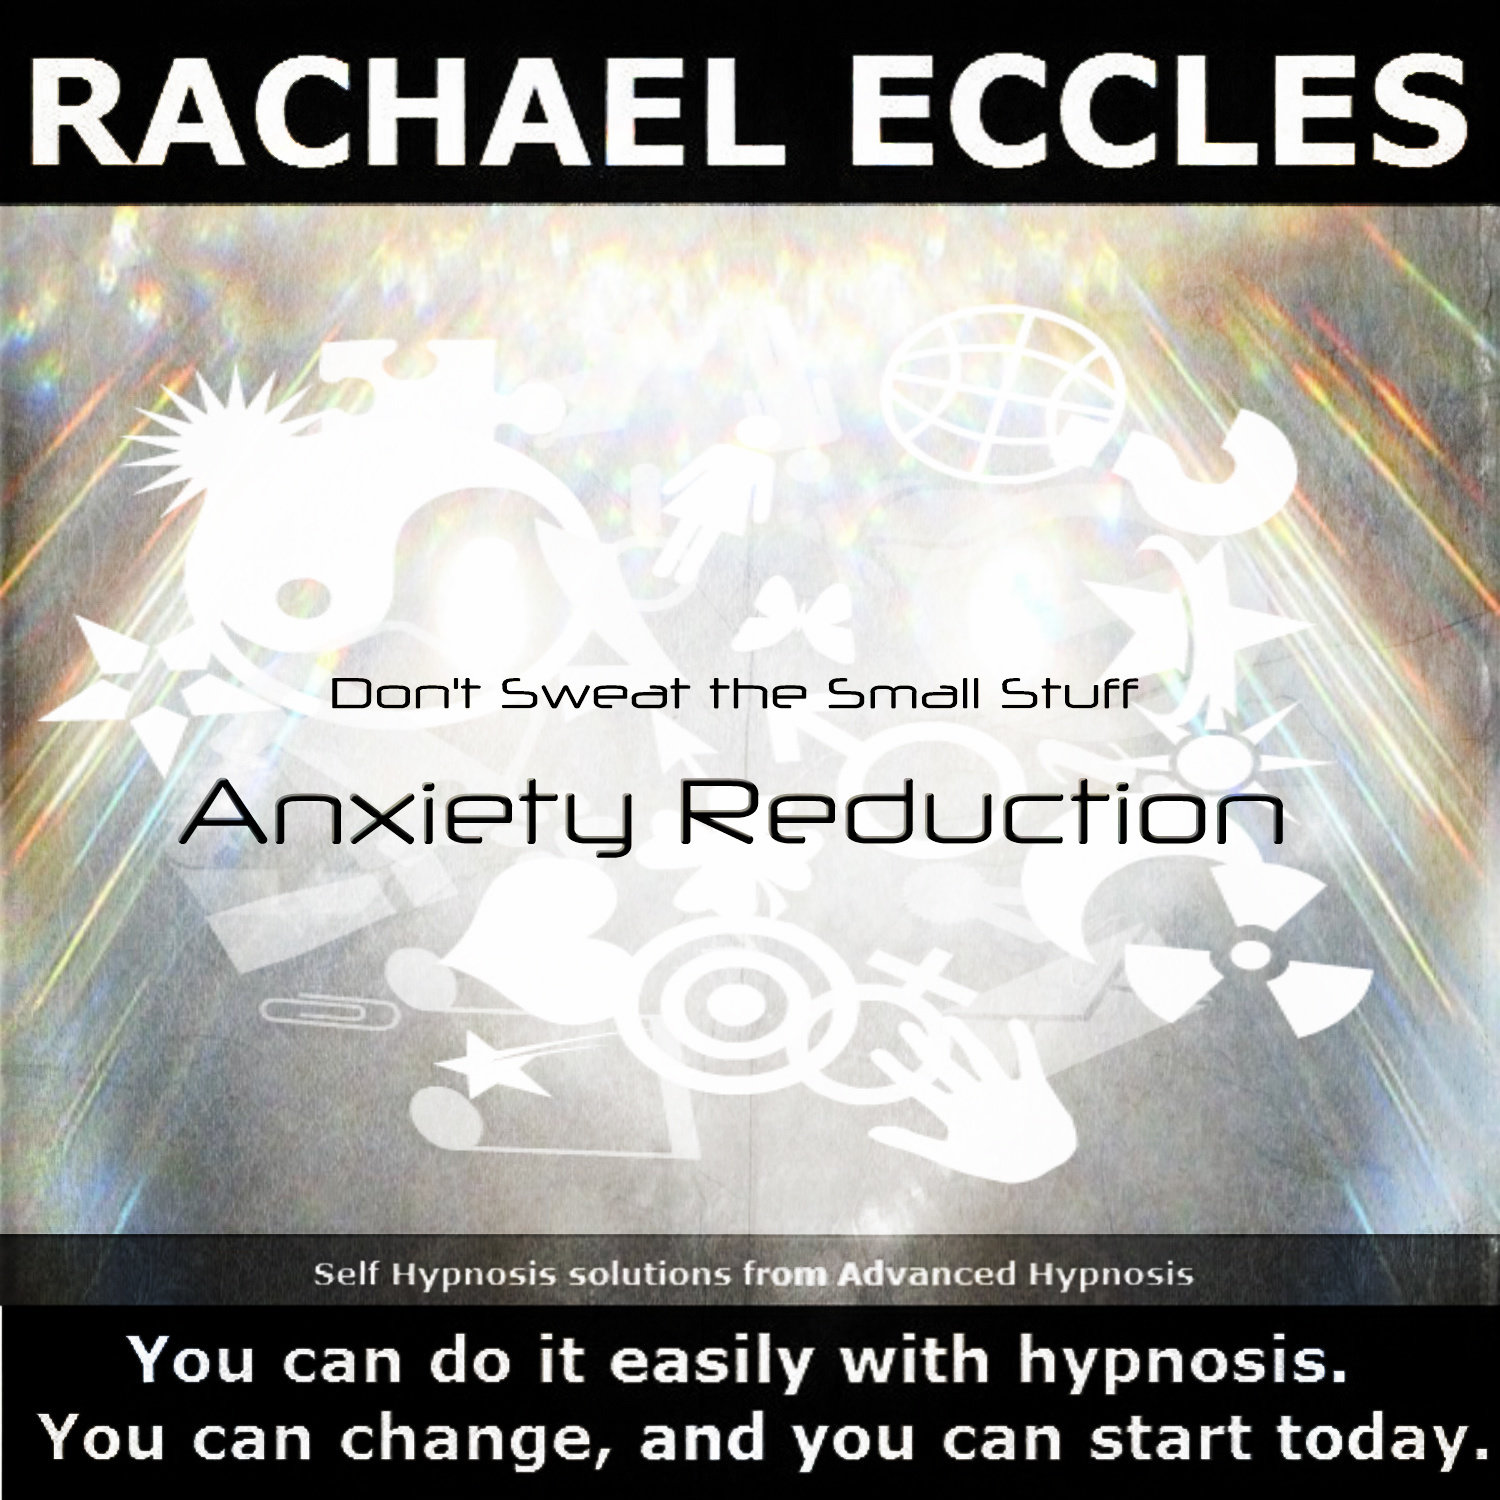 Don't Sweat The Small Stuff, 2 track Hypnotherapy Self Hypnosis CD